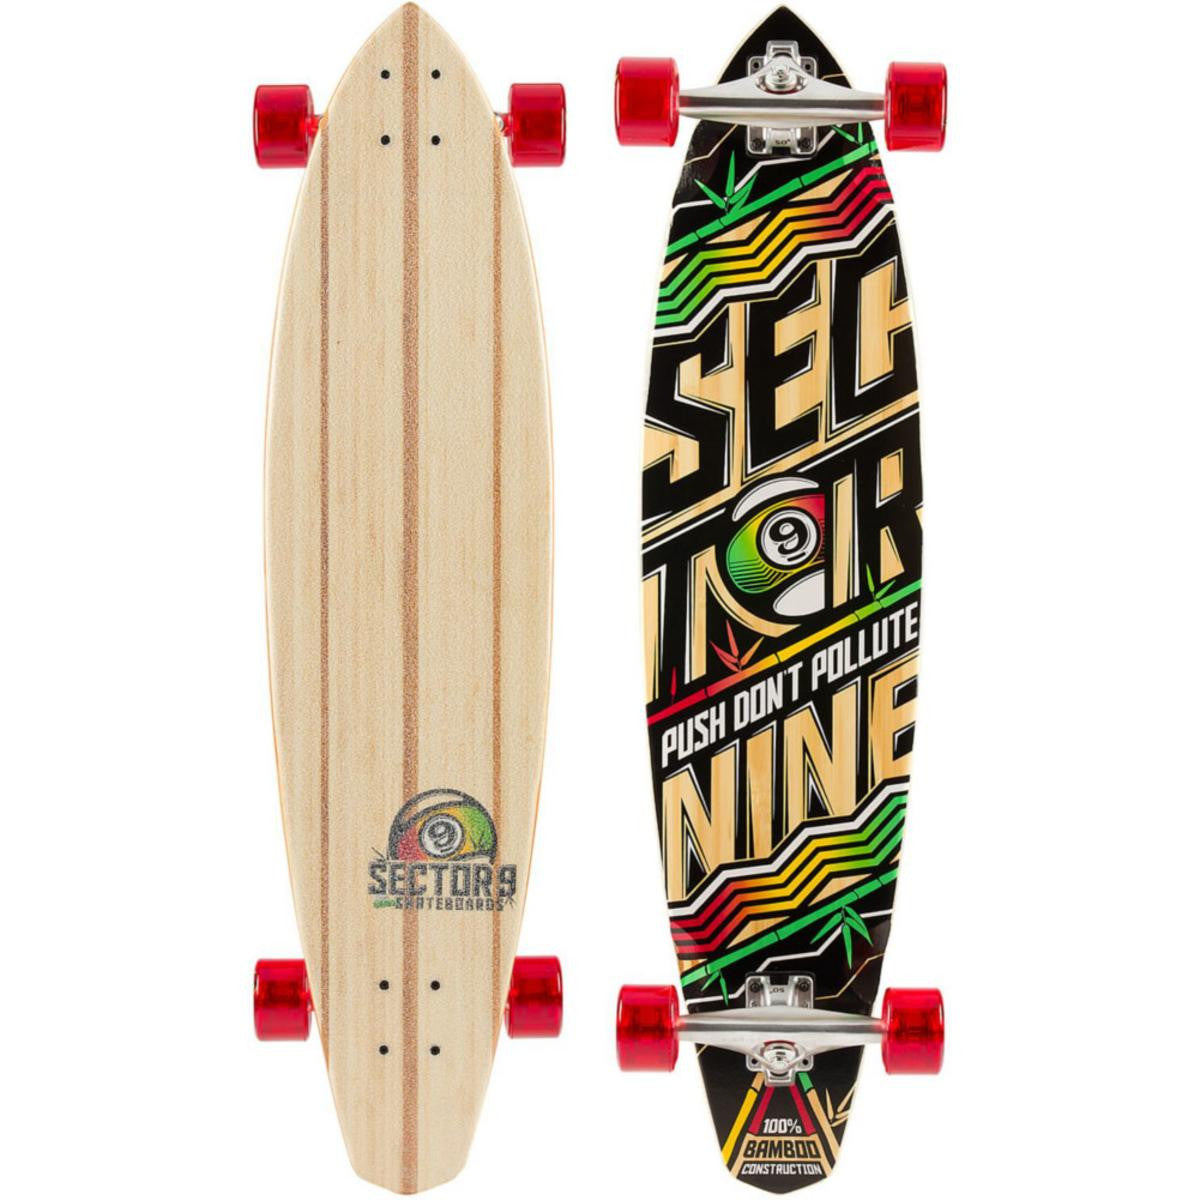 "Sector 9 Rhythm 38.3"" Longboard Complete 70mm Wheels Gullwing Trucks"